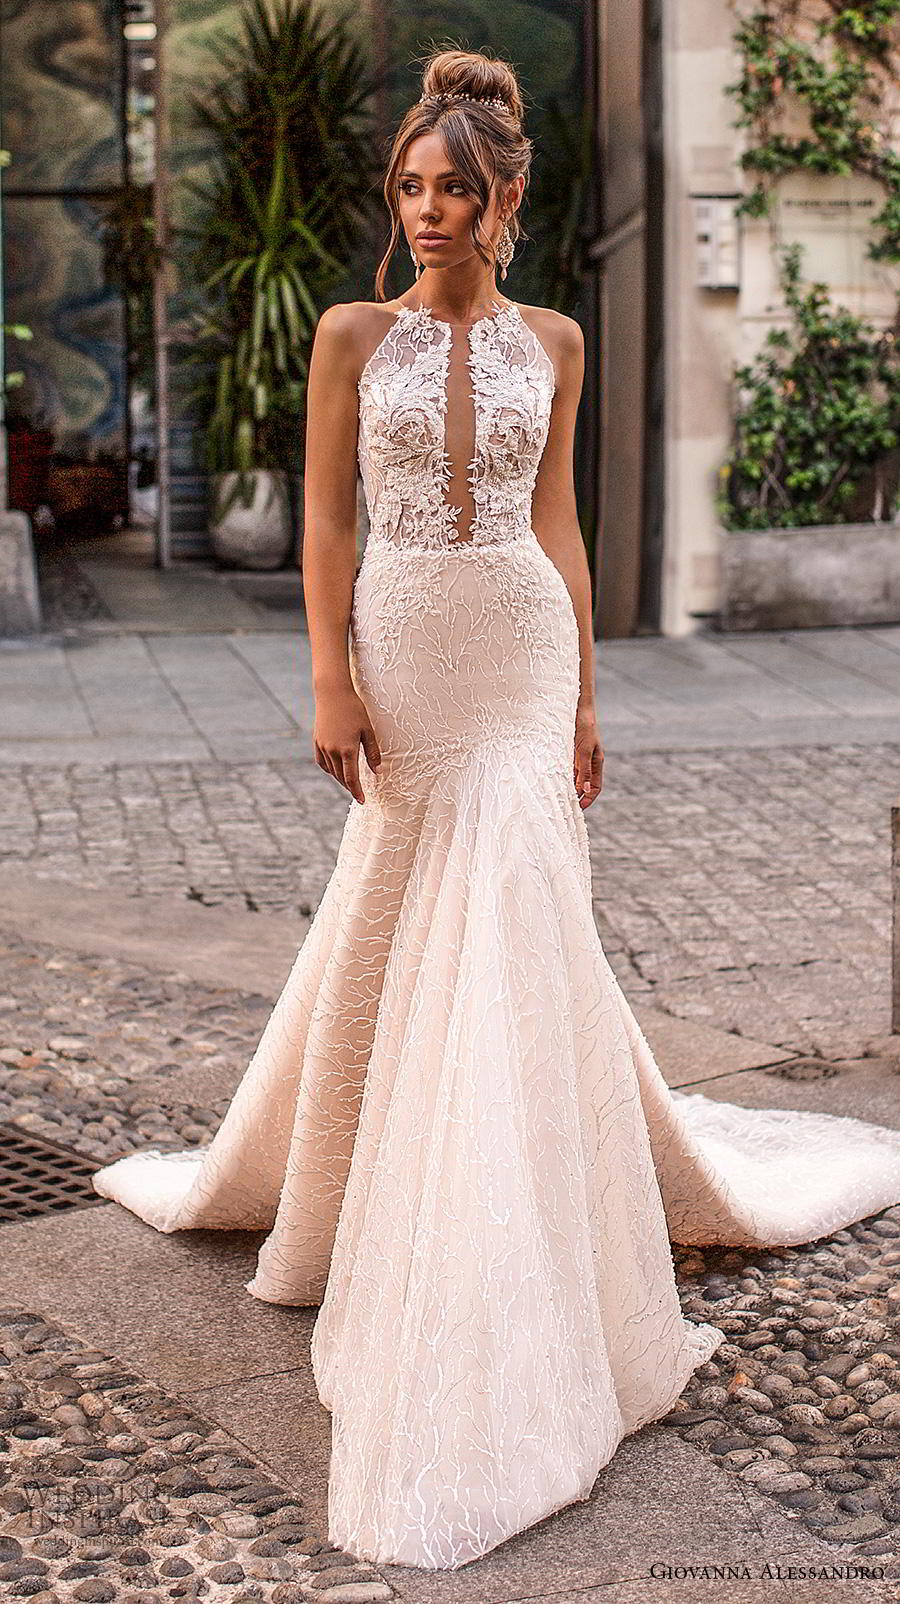 giovanna alessandro 2019 bridal sleeveless halter neck heavily full embellishment elegant sexy champagne trumpet wedding dress keyhole back chapel train (10) mv